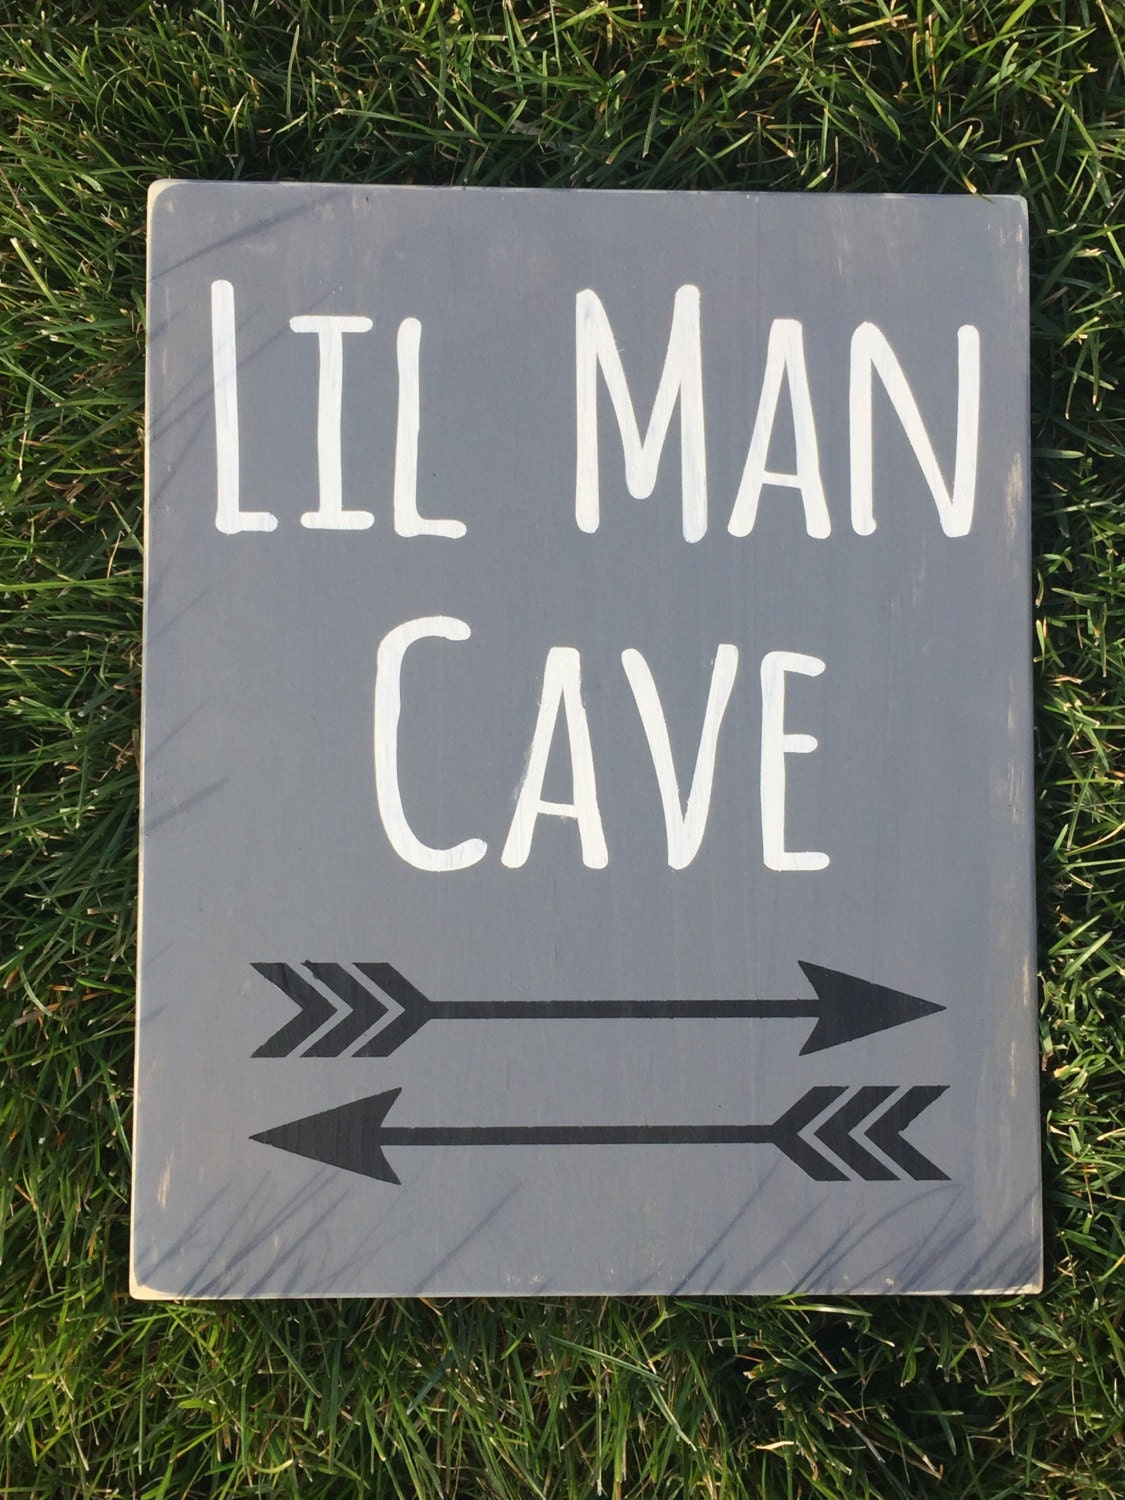 Timber Man Cave Signs : Lil man cave wood sign nursery baby boy decor